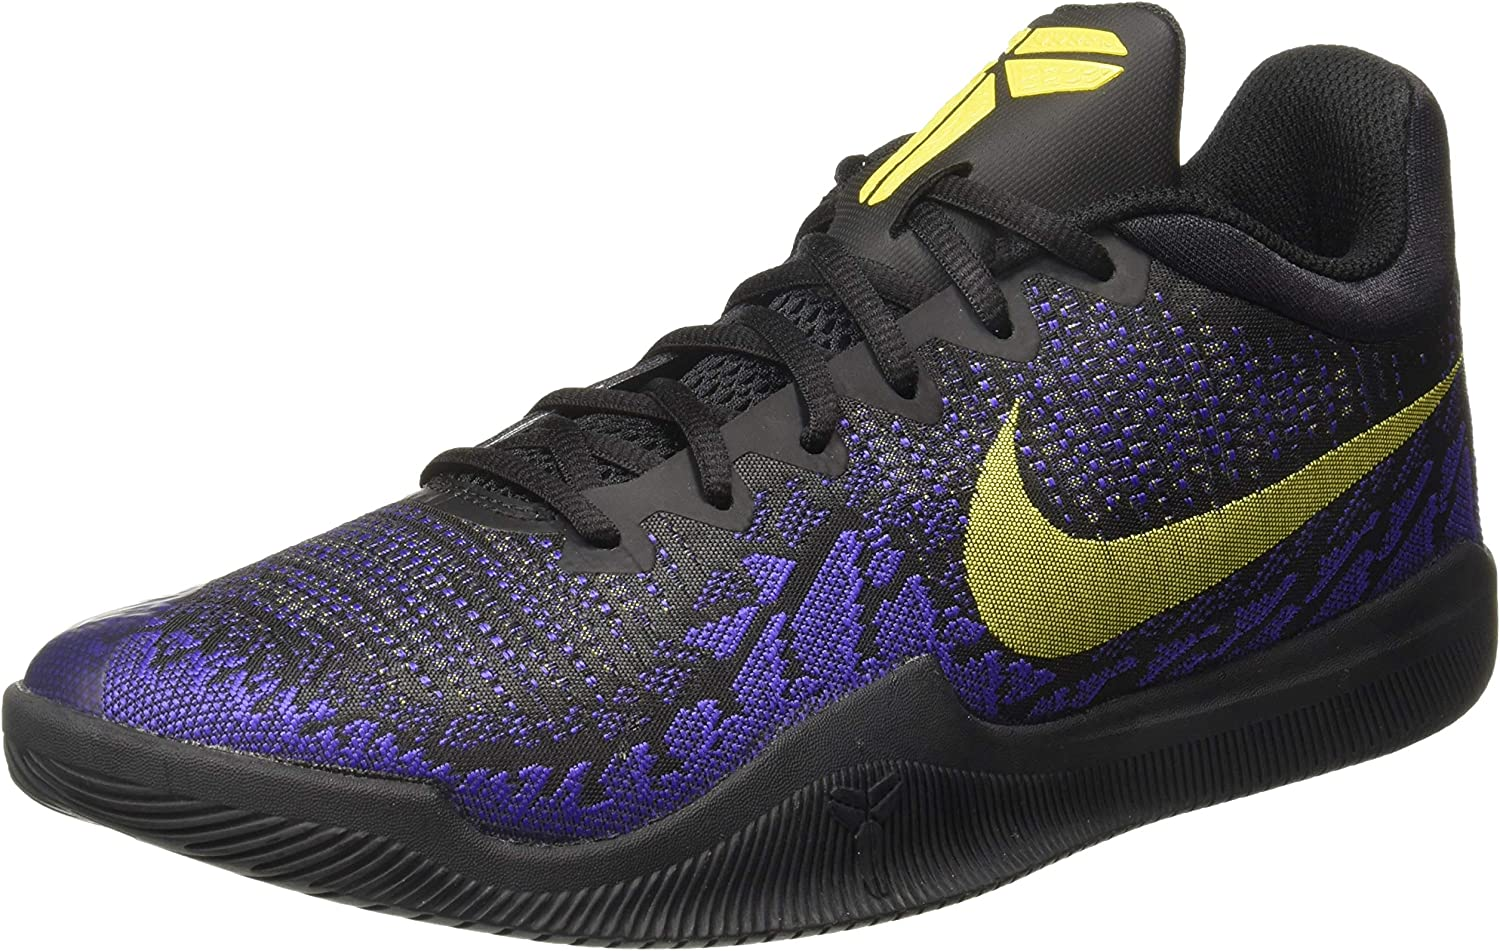 Nike Mamba Rage EP [908974-024] Men Basketball Shoes Kobe Bryant 黒/黄